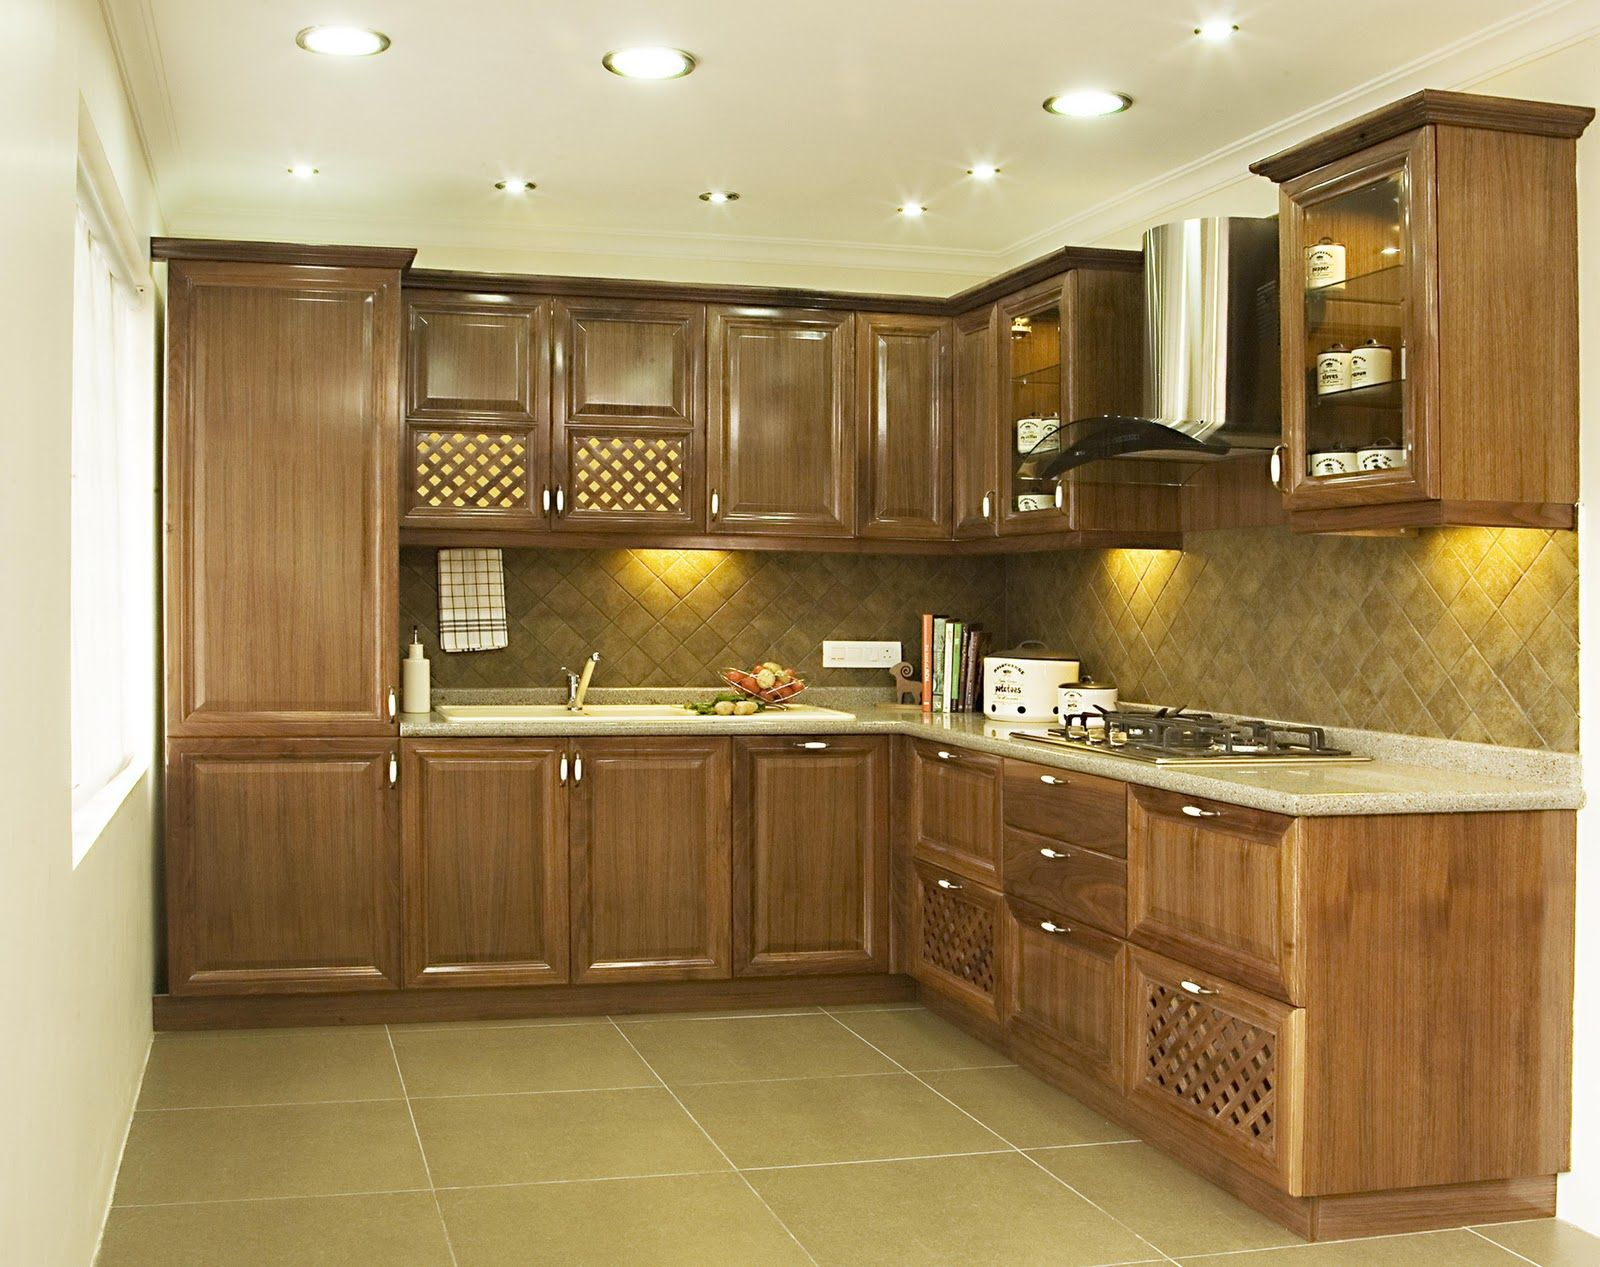 3d Kitchen Design Software Download Free   Http://sapuru.com/3d